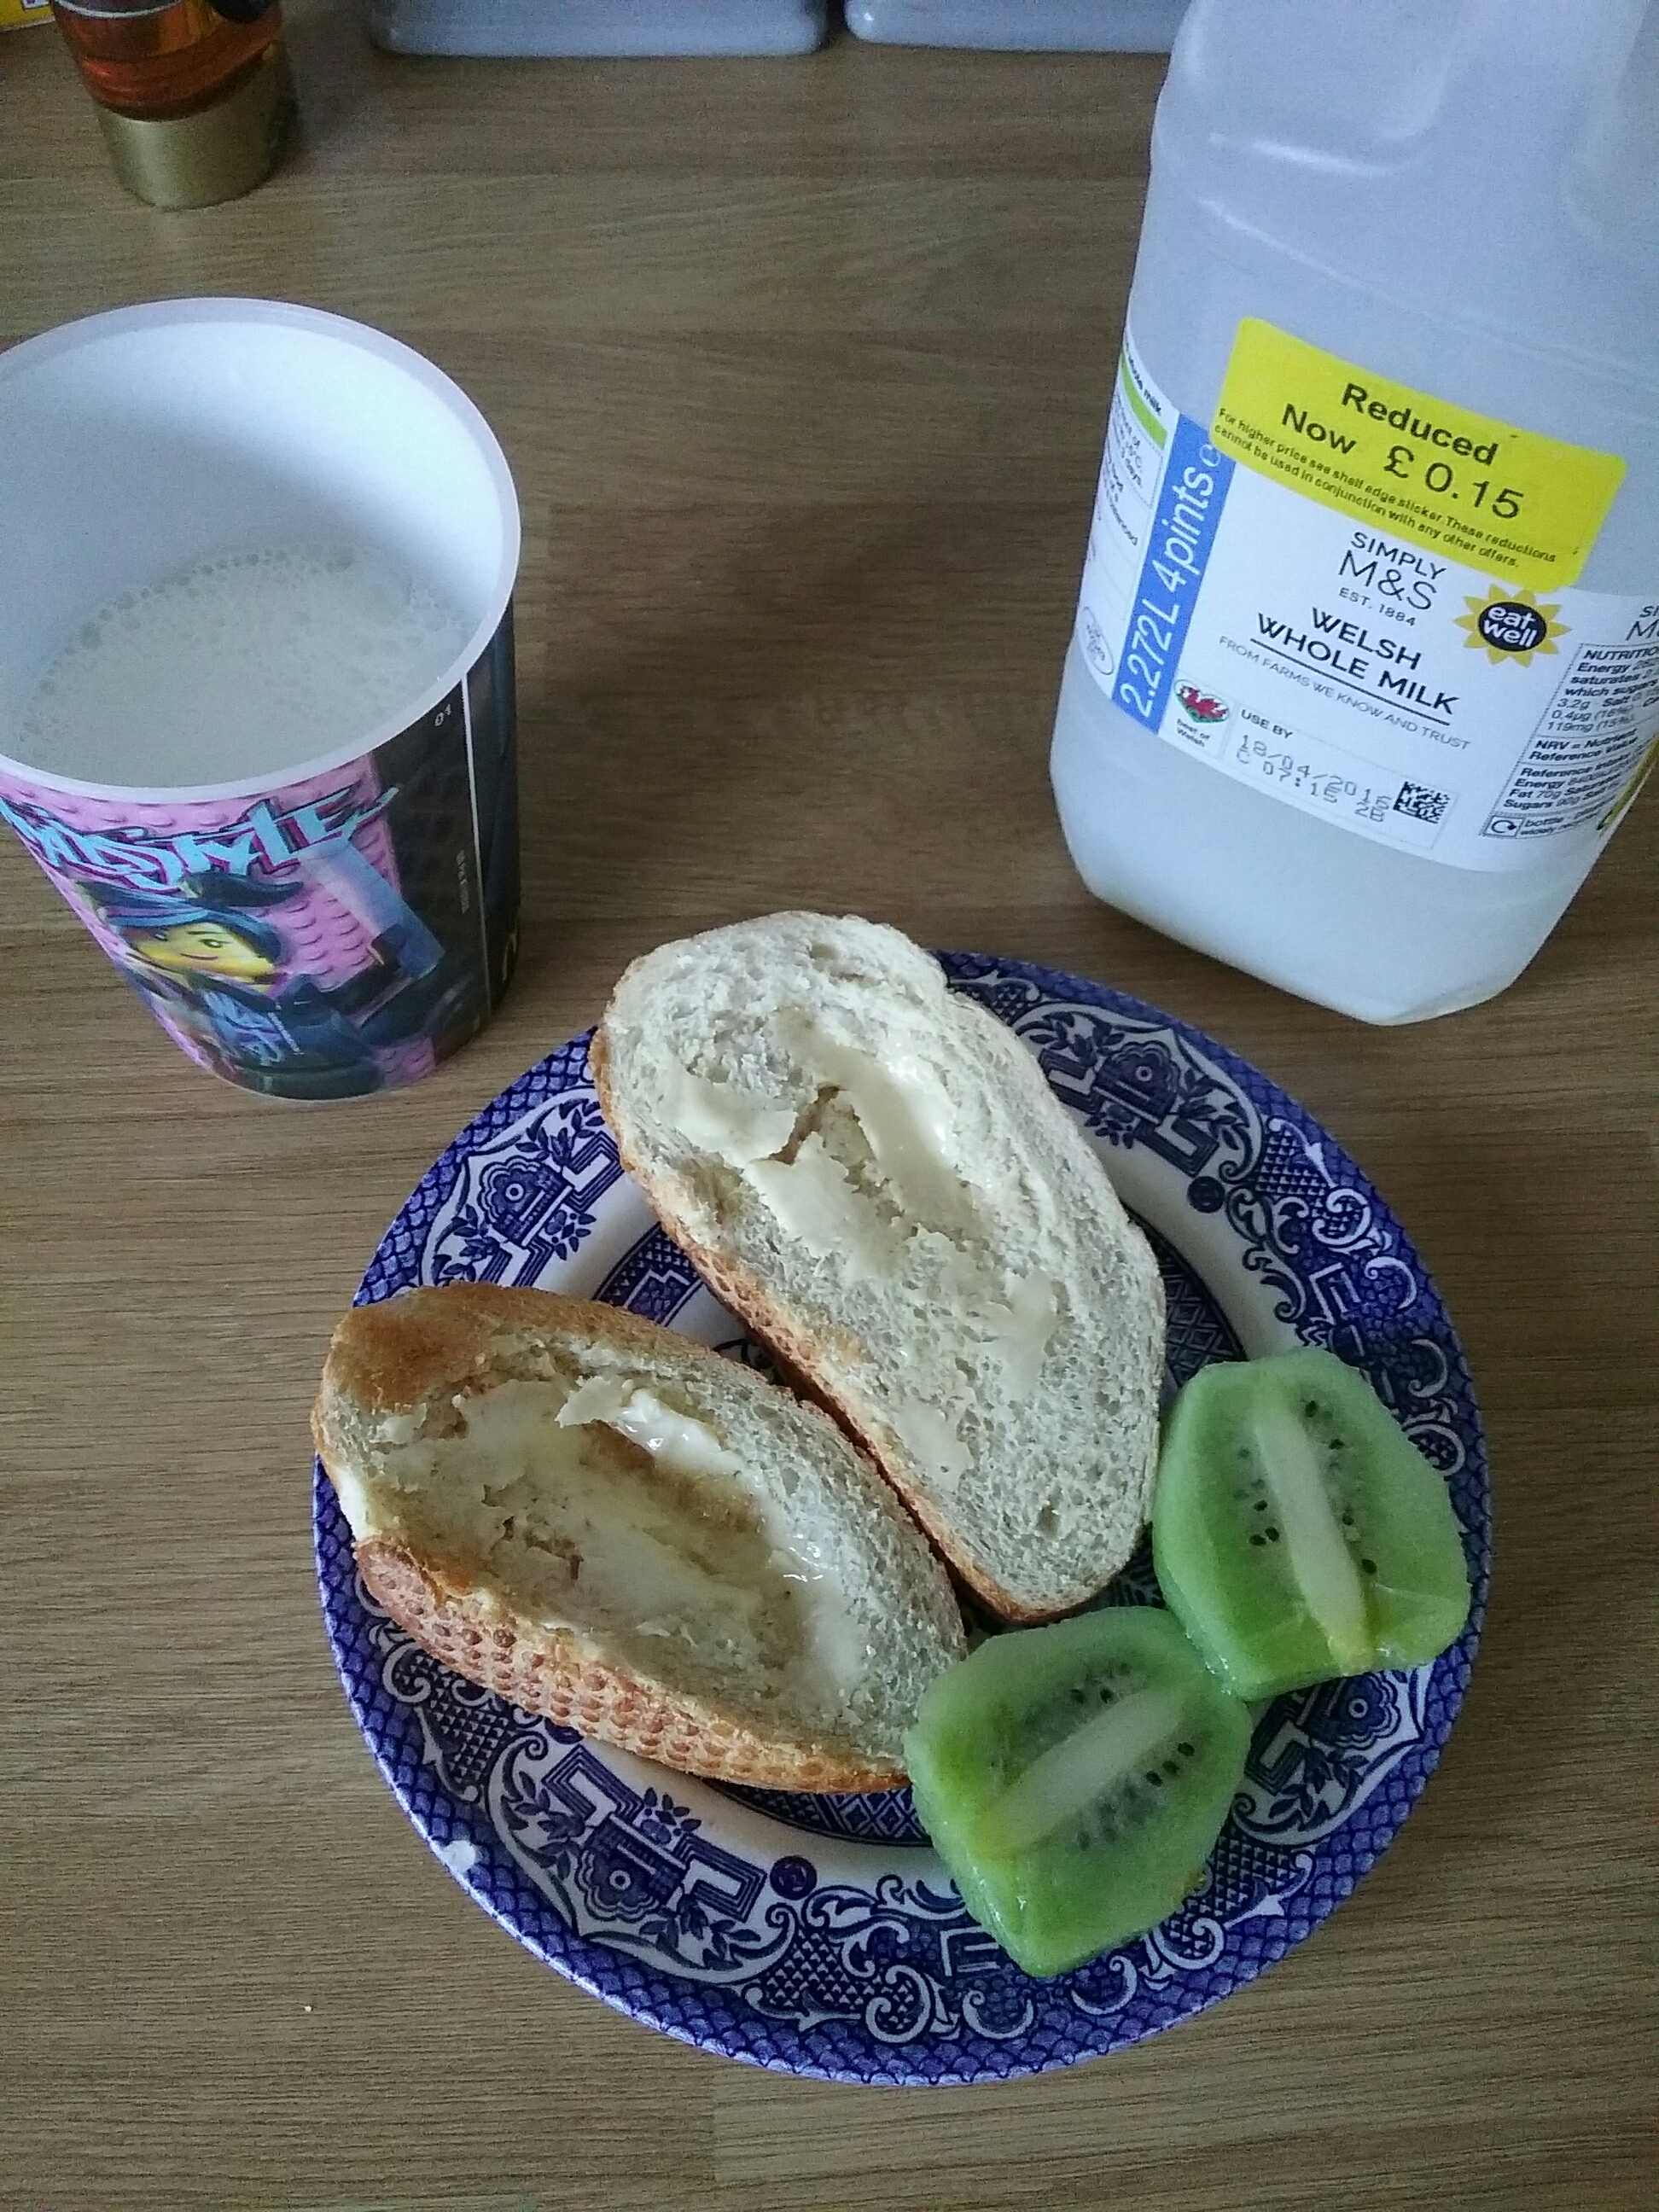 cup of milk alongside reduced whole milk with yellow ticket 15p and a blue plate of crusty bread and kiwi